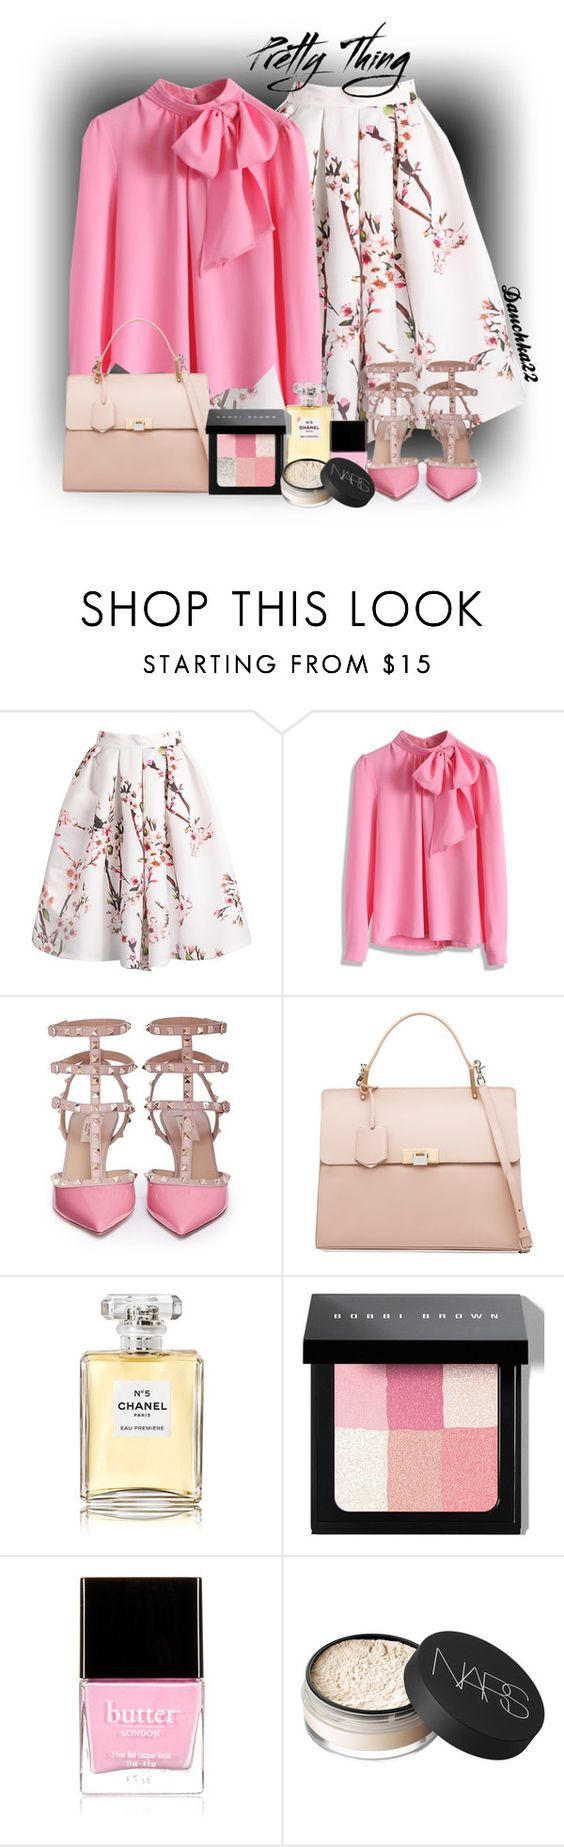 """Pretty Thing"" by dauchka22 ❤ liked on Polyvore featuring Chicwish, Valentino, Balenciaga, Chanel, Bobbi Brown Cosmetics, Butter London and NARS Cosmetics"